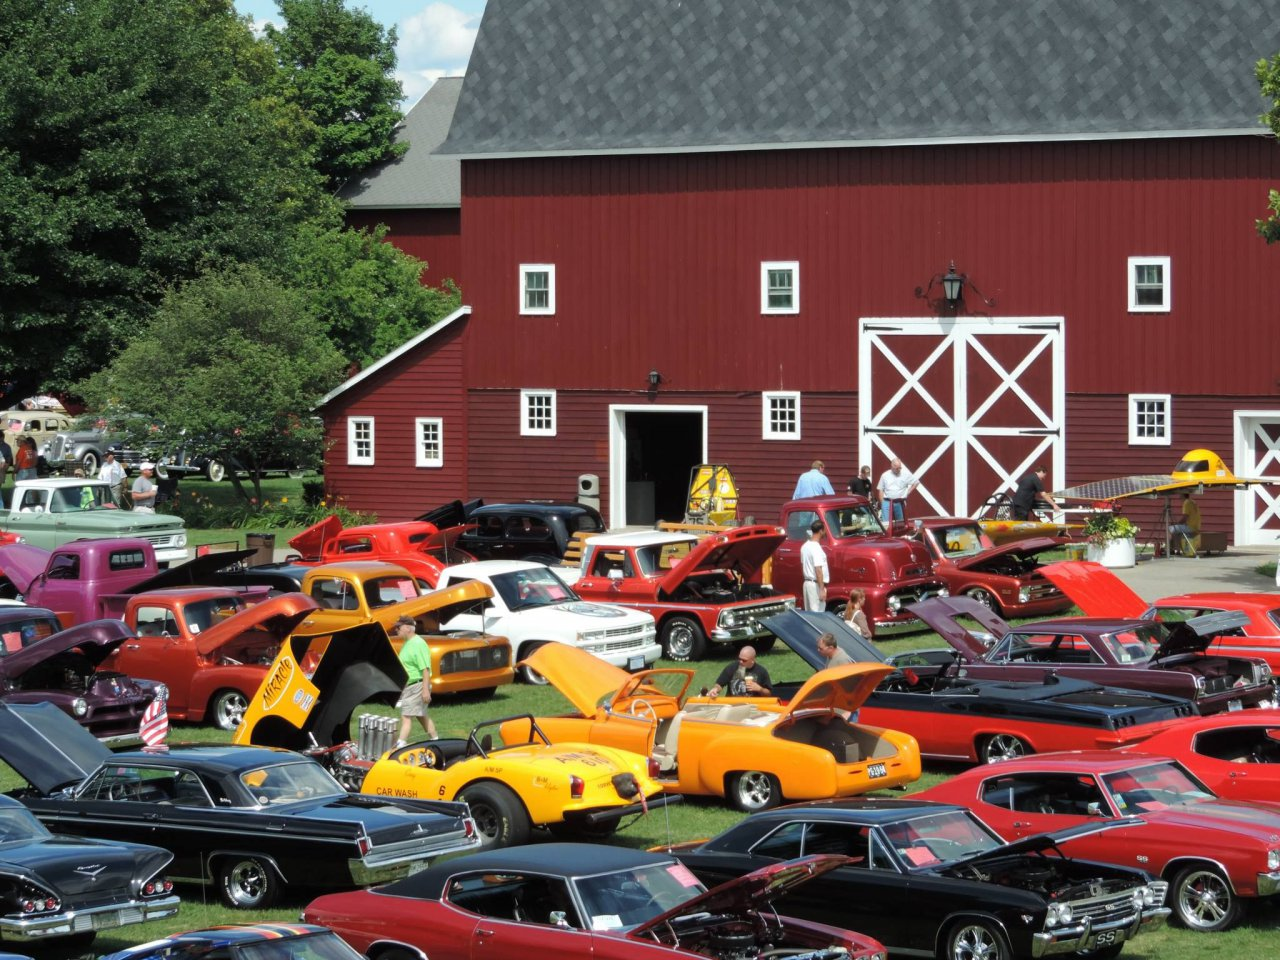 car museum, Malcolm Bricklin to be featured in Canadian museum's Zoom meeting, ClassicCars.com Journal